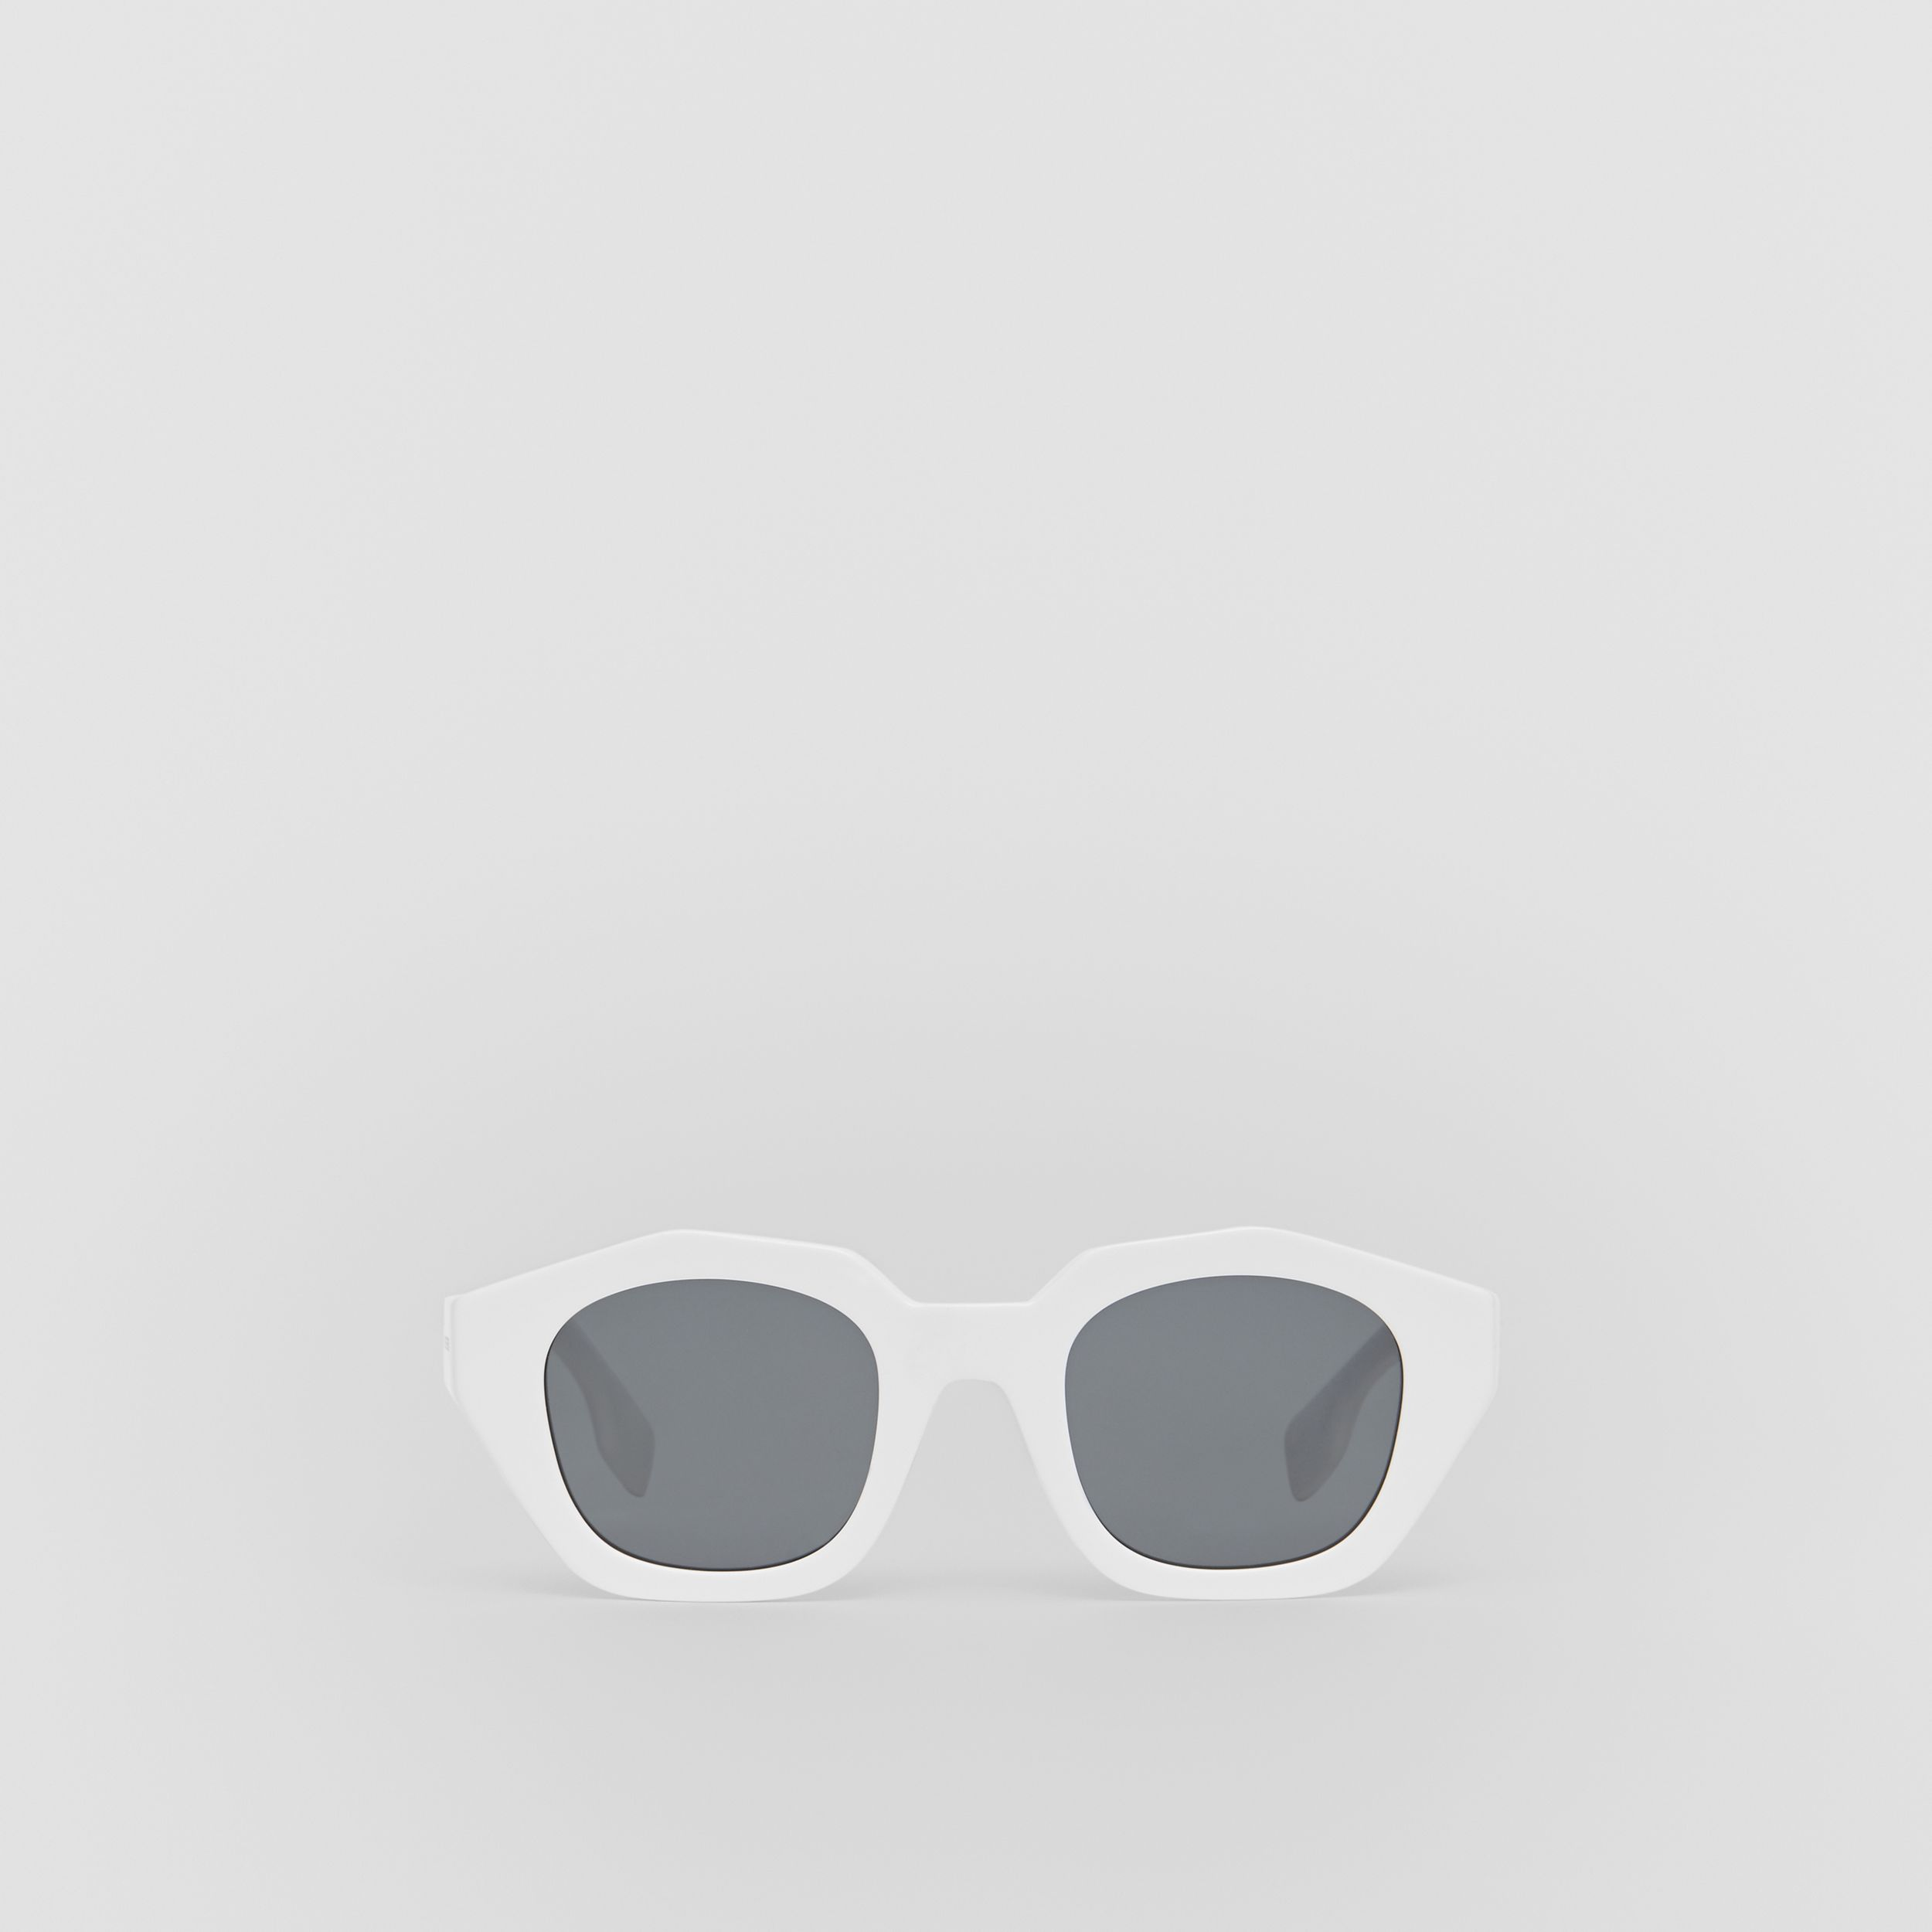 Geometric Frame Sunglasses in White | Burberry Singapore - 1